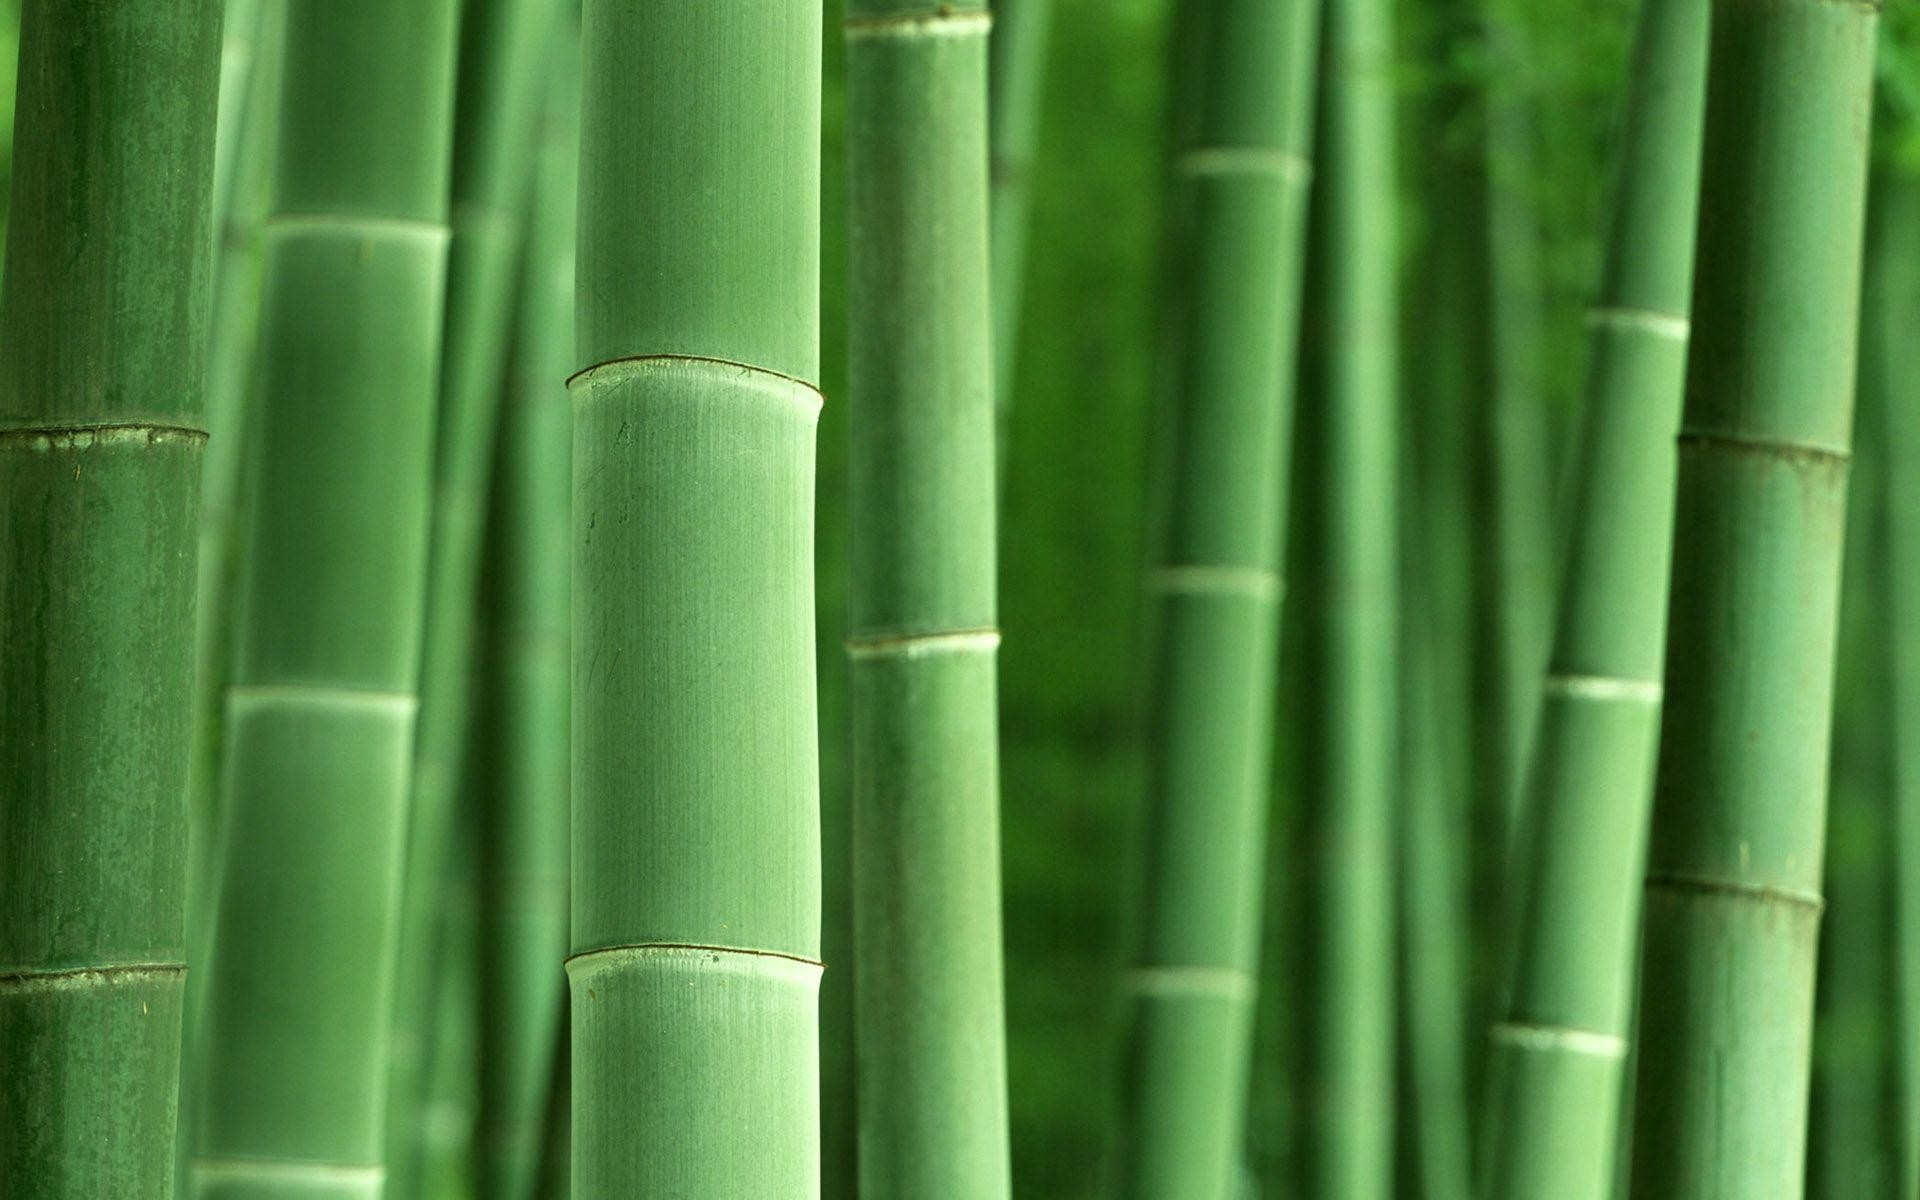 1920x1200 Bamboo 6 desktop wallpaper Â« Desktopia.